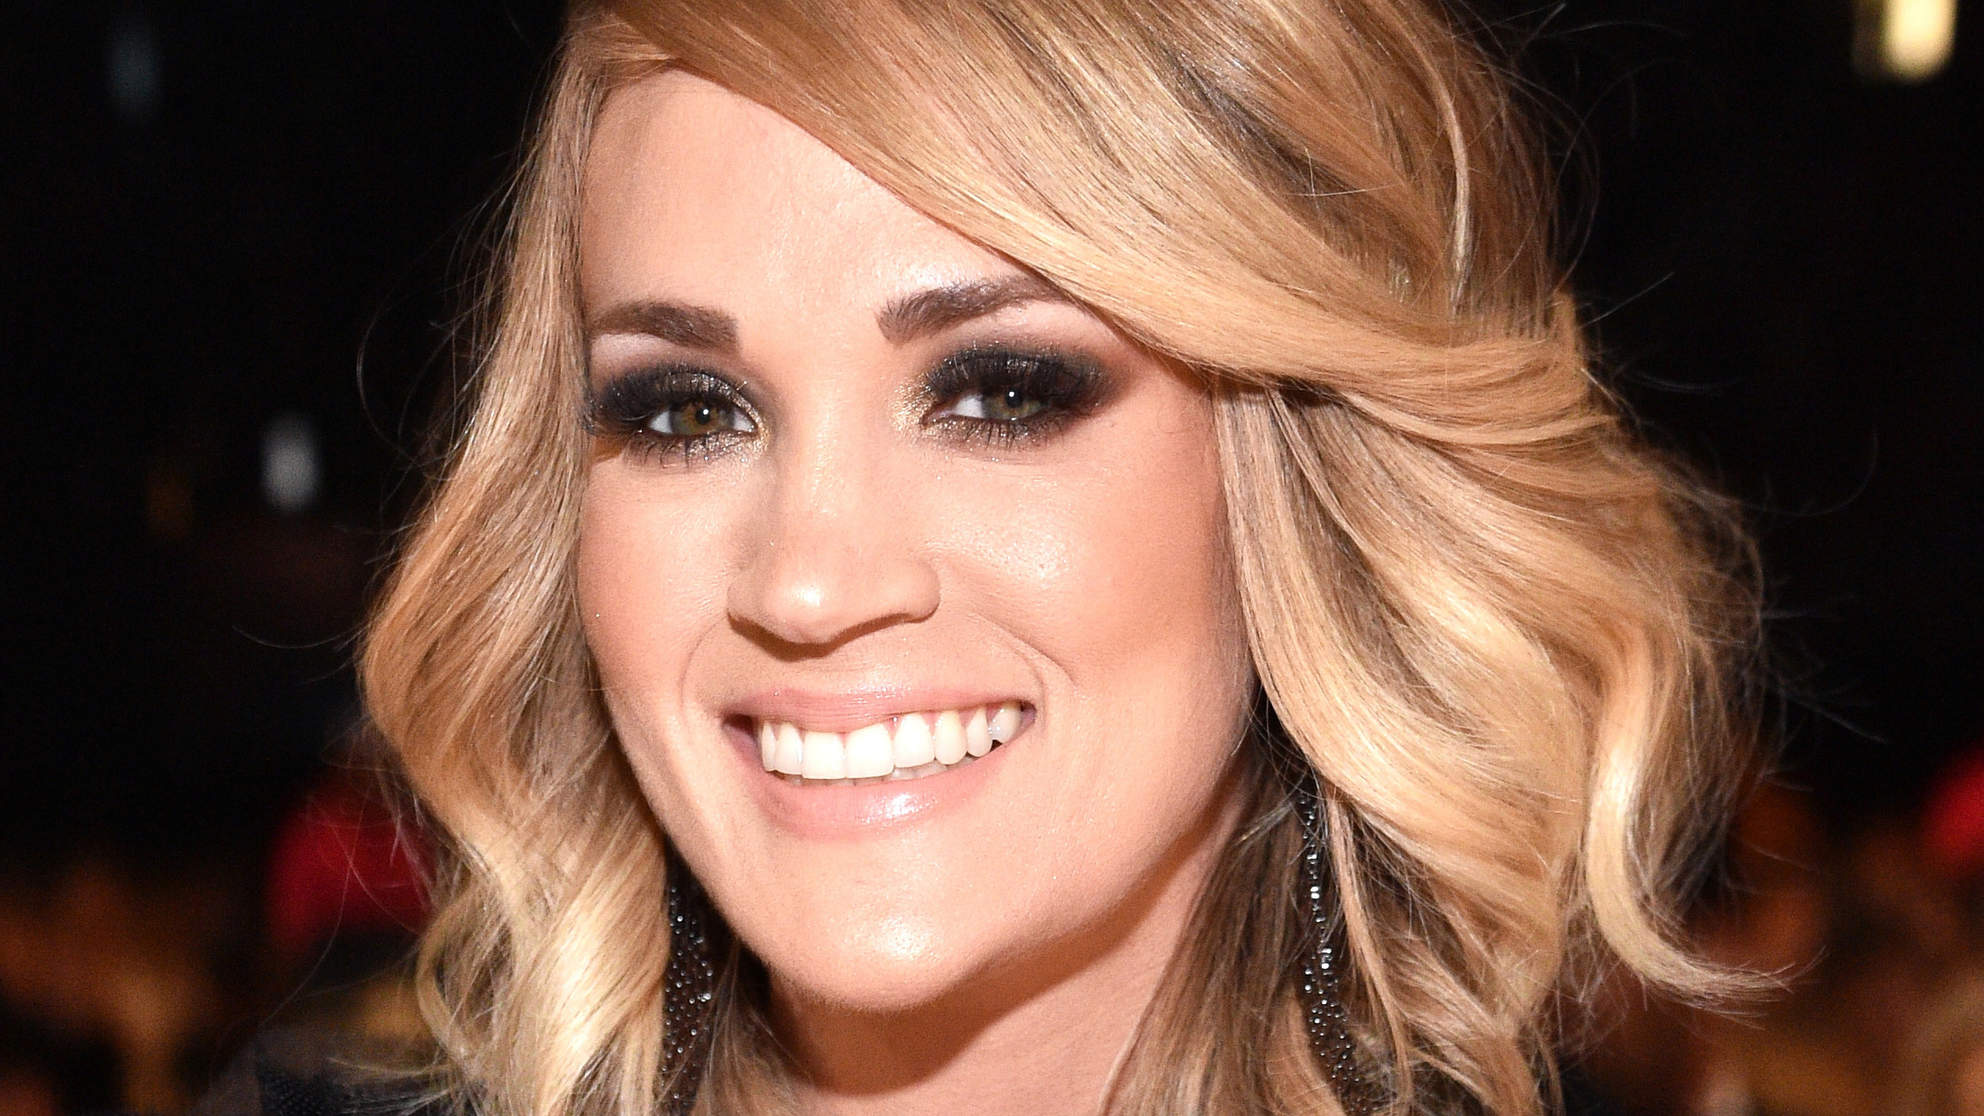 Carrie Underwood Reveals Half Her Face After Receiving More Than 40 Stitches in Fall Accident